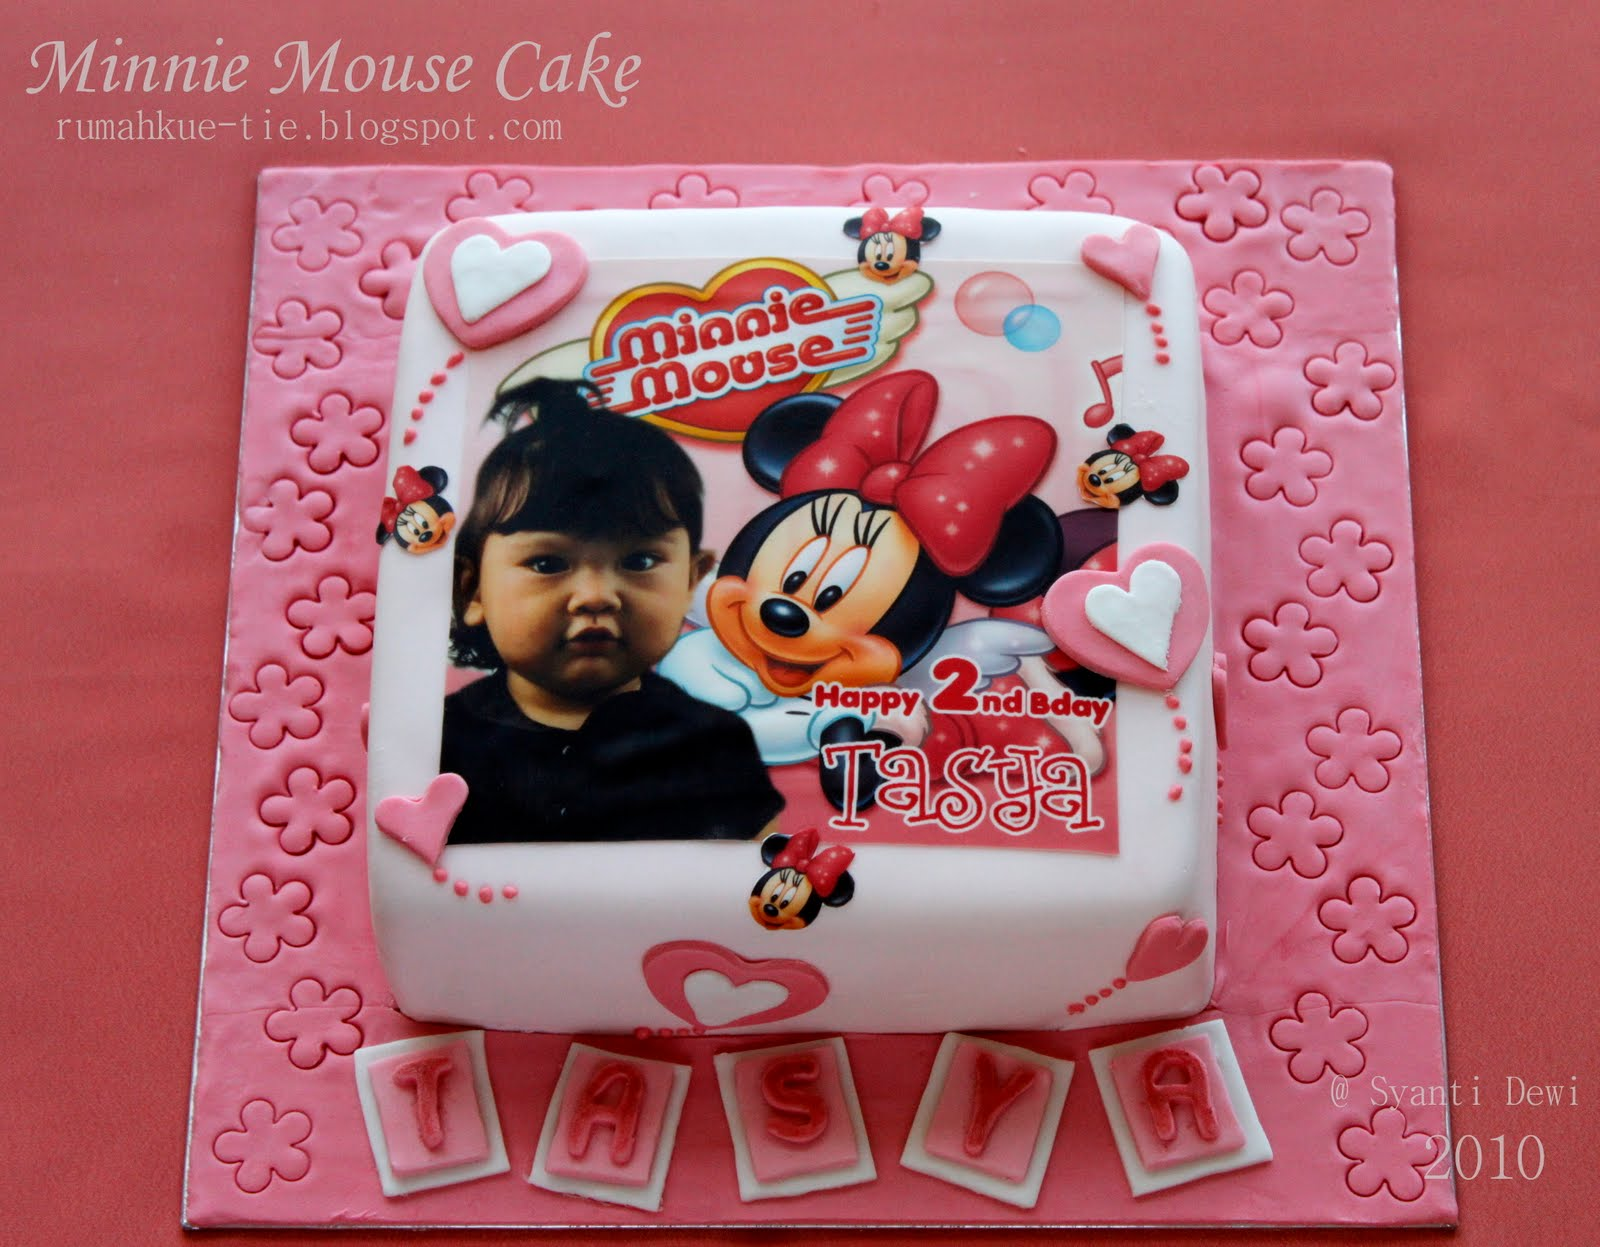 Minnie Mouse Cake and Cupcake